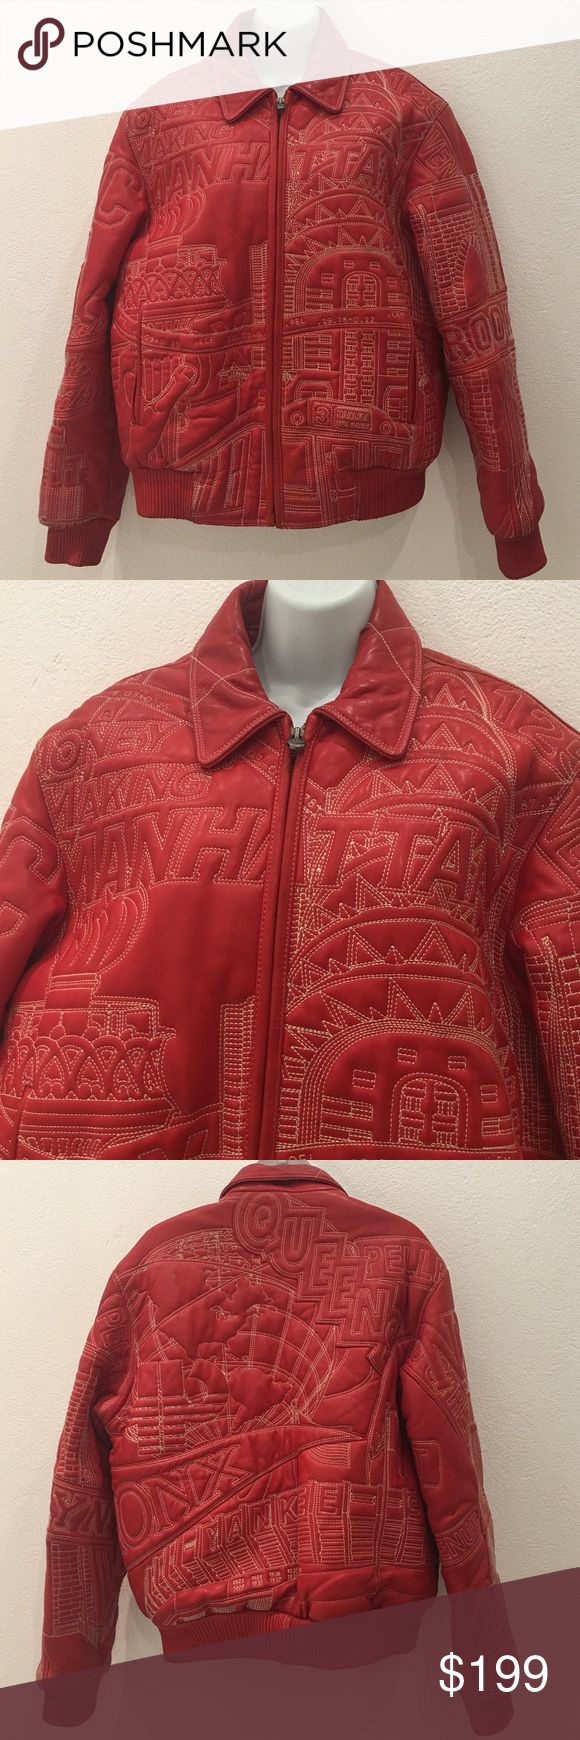 """Pelle Pelle by Marc Buchanan Red Leather Jacket 12 Preowned Authentic Embroidered Pelle Pelle by Marc Buchanan Red Leather Jacket 12/ L """"Money Making Manhattan"""" Zip up jacket. GOR-GOEUS!!! Has signs of wear due to wear.  Has small tear in collar and small pen marks near elbow. Please look at pictures for better reference. Happy shopping! Pelle Pelle Jackets & Coats"""